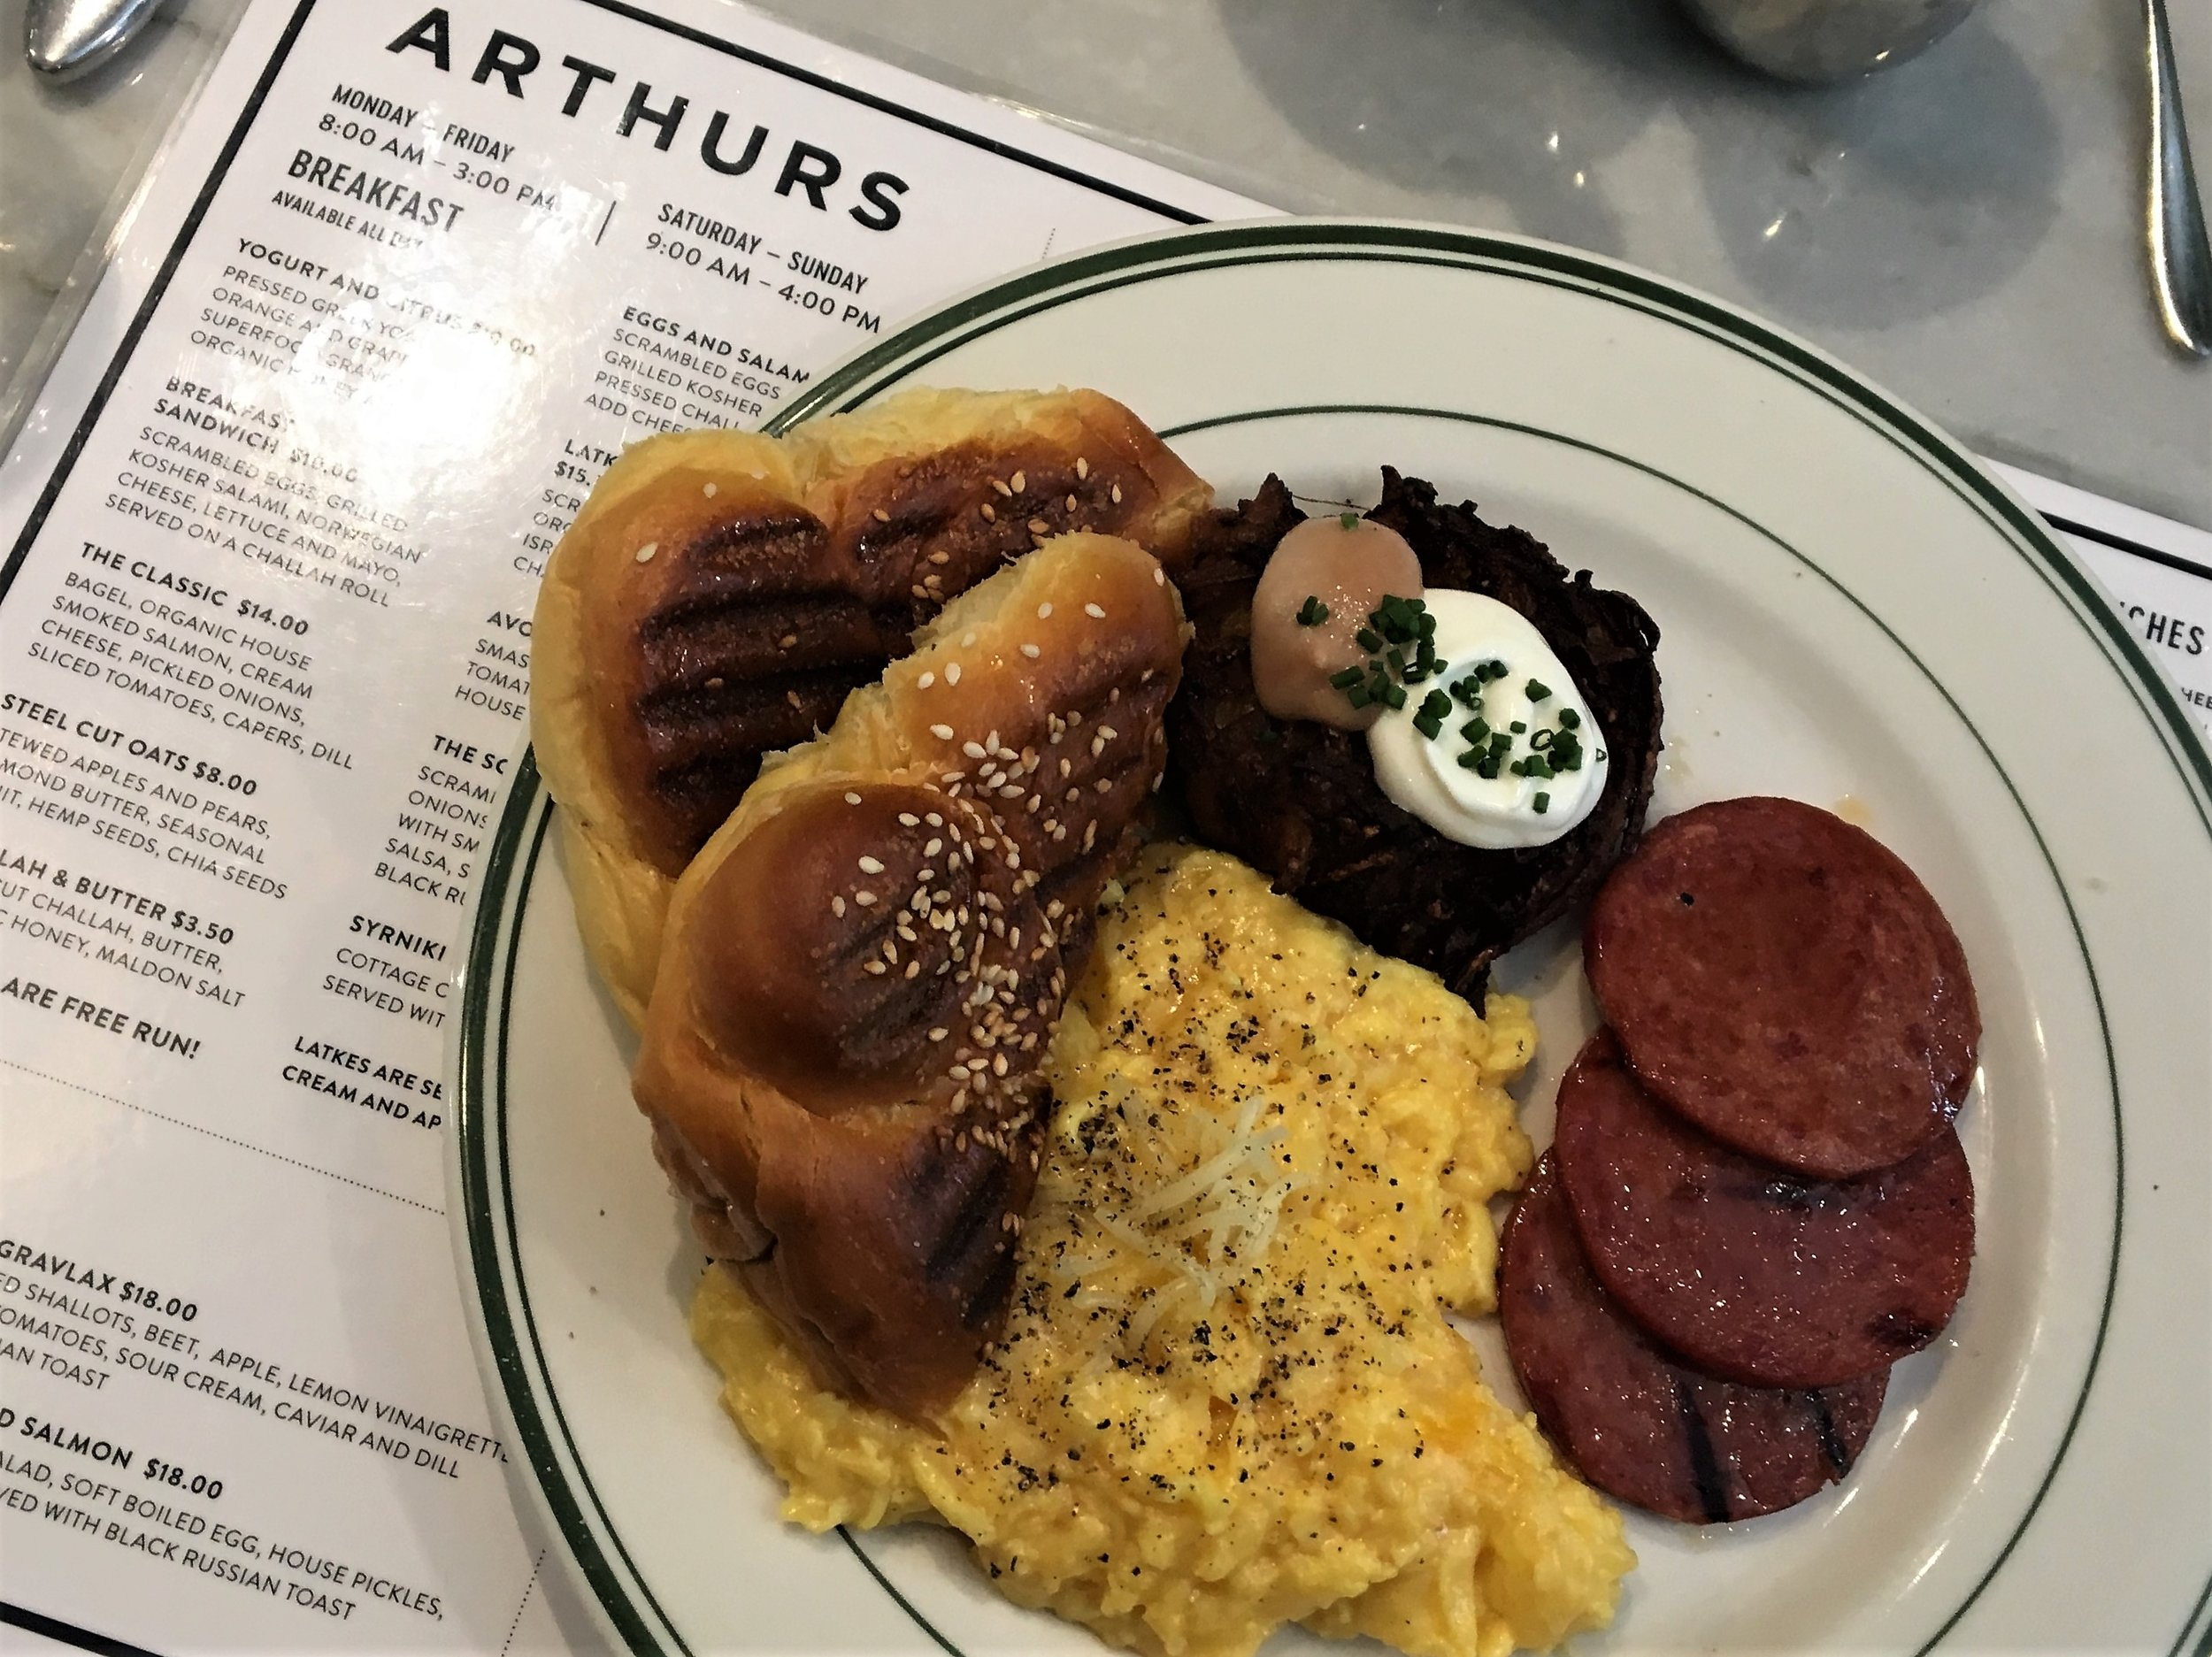 I got the eggs and salami. The challah was incredible - hot and buttery. The potato latke was just as amazing; it was served with applesauce and sour cream. I am drooling just thinking about this dish.